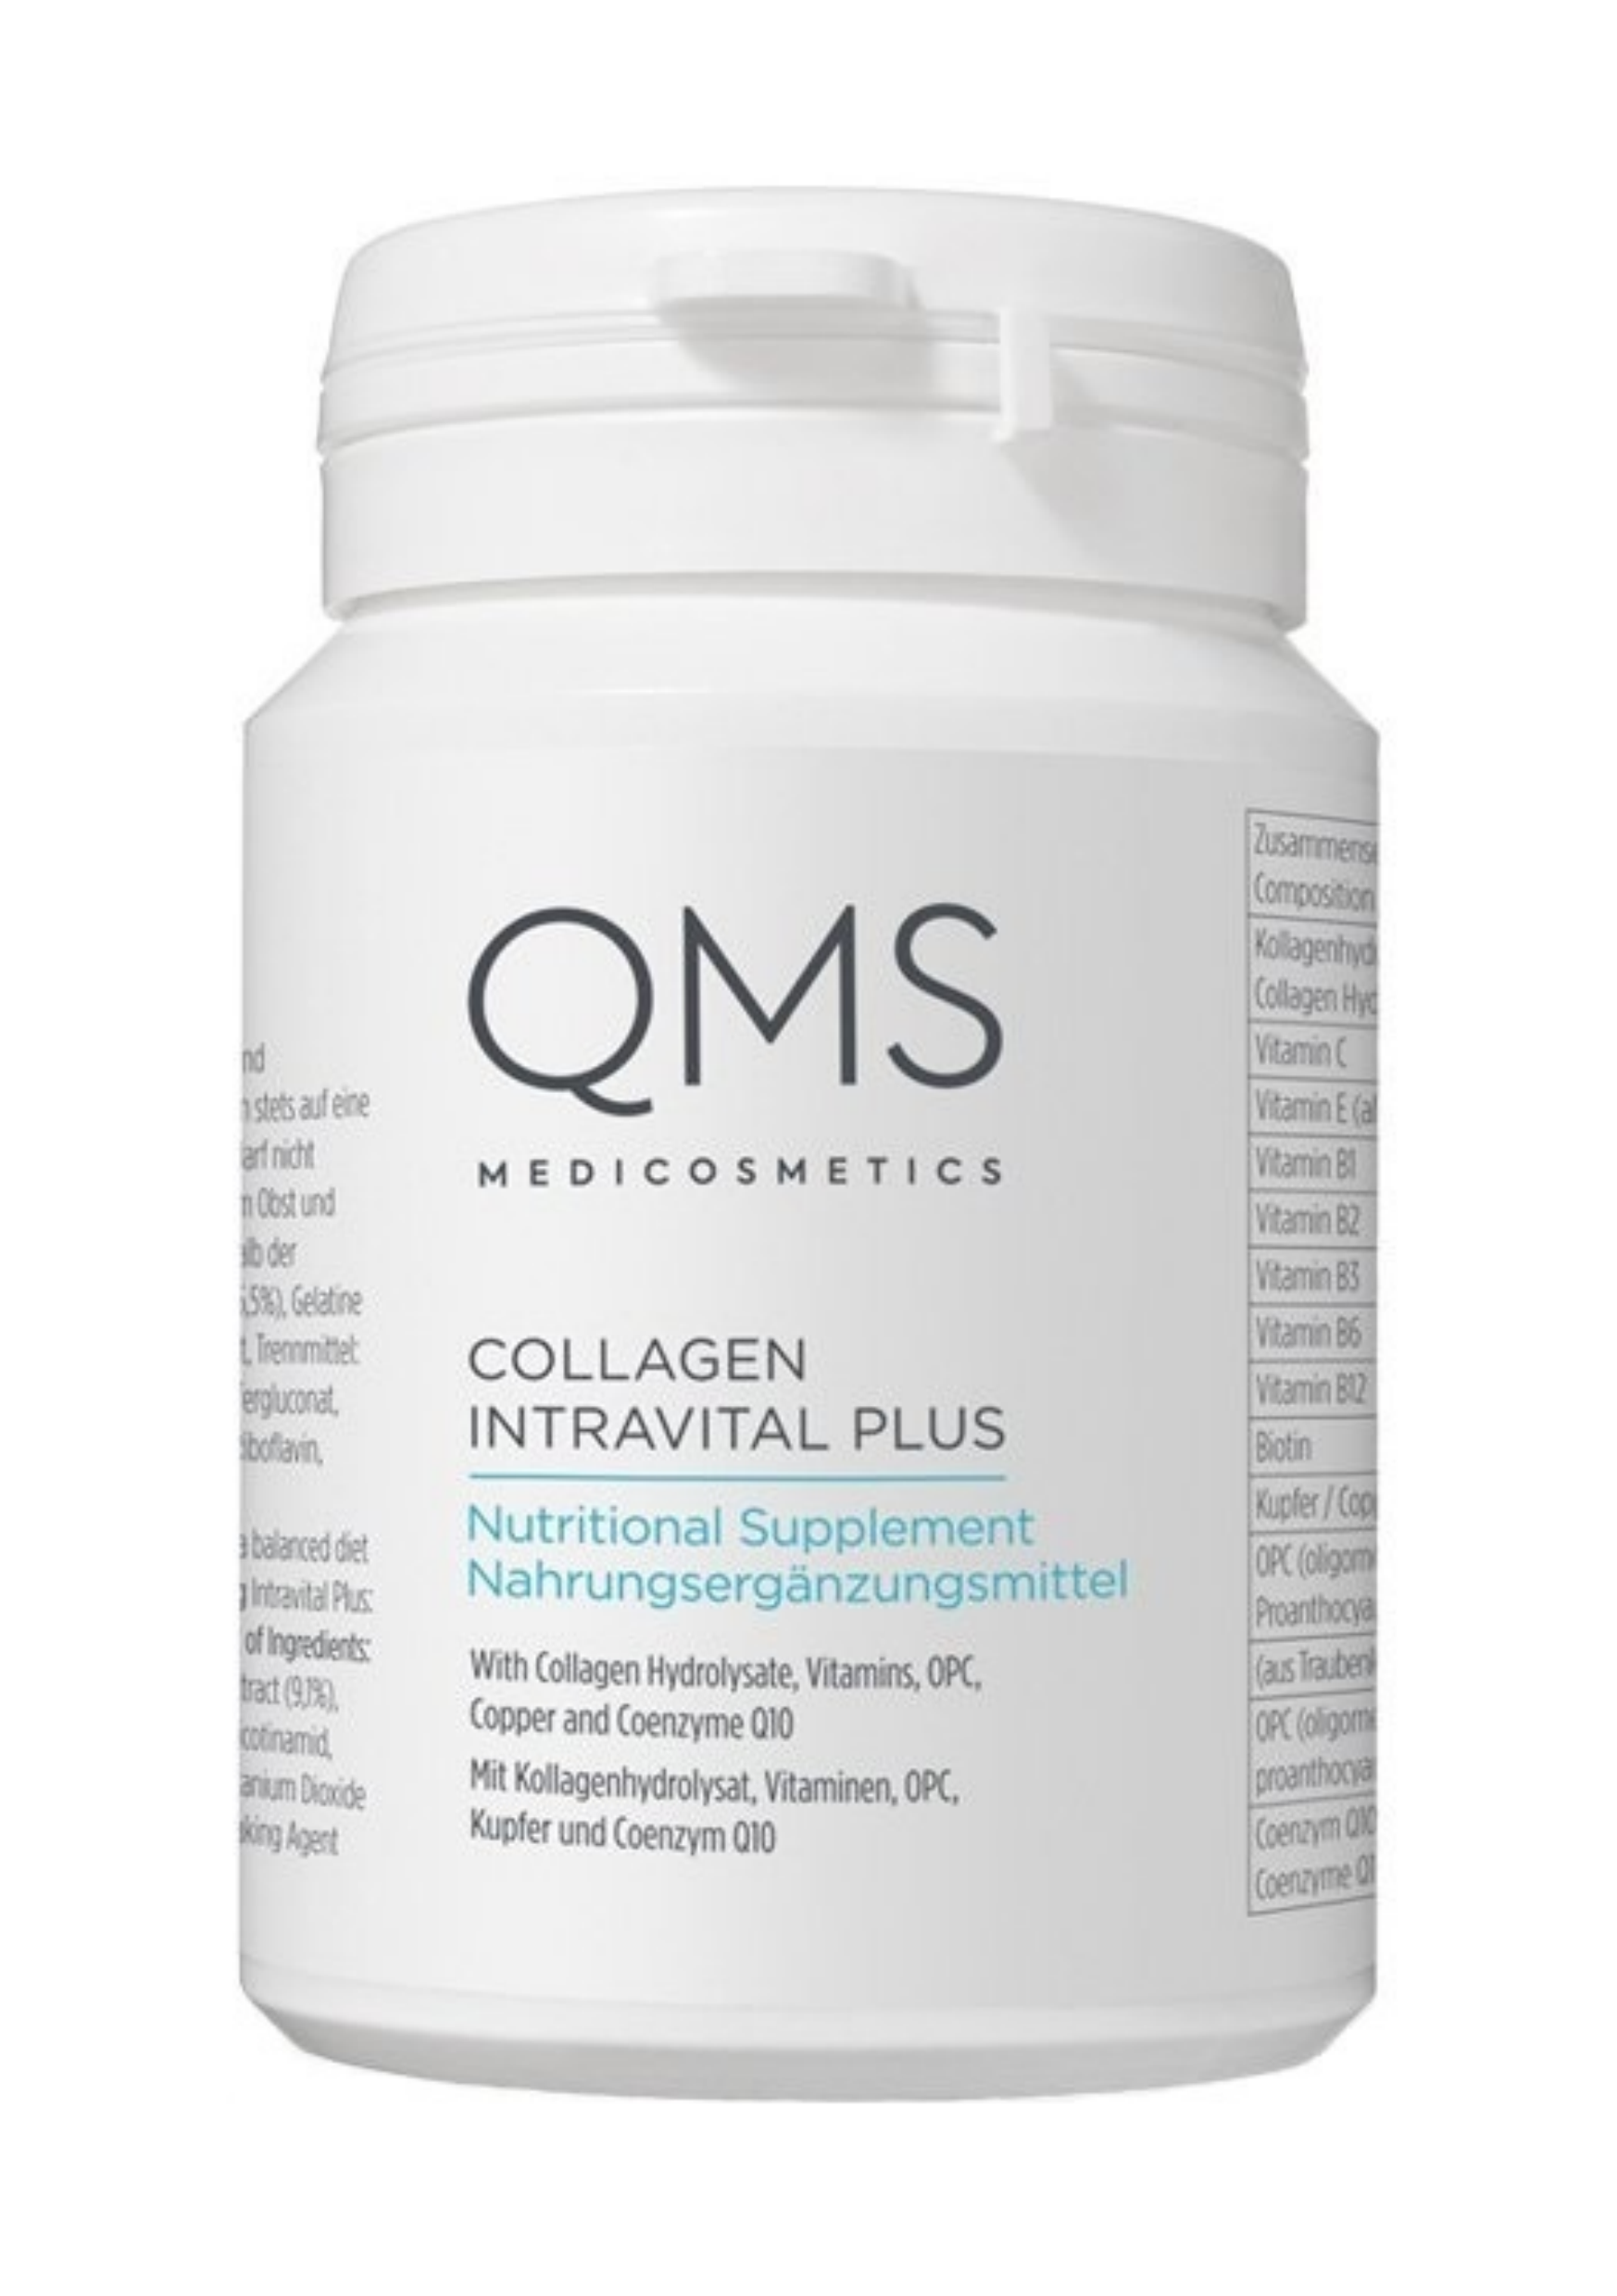 QMS®Collagen Intravital Plus Nutritional Supplement